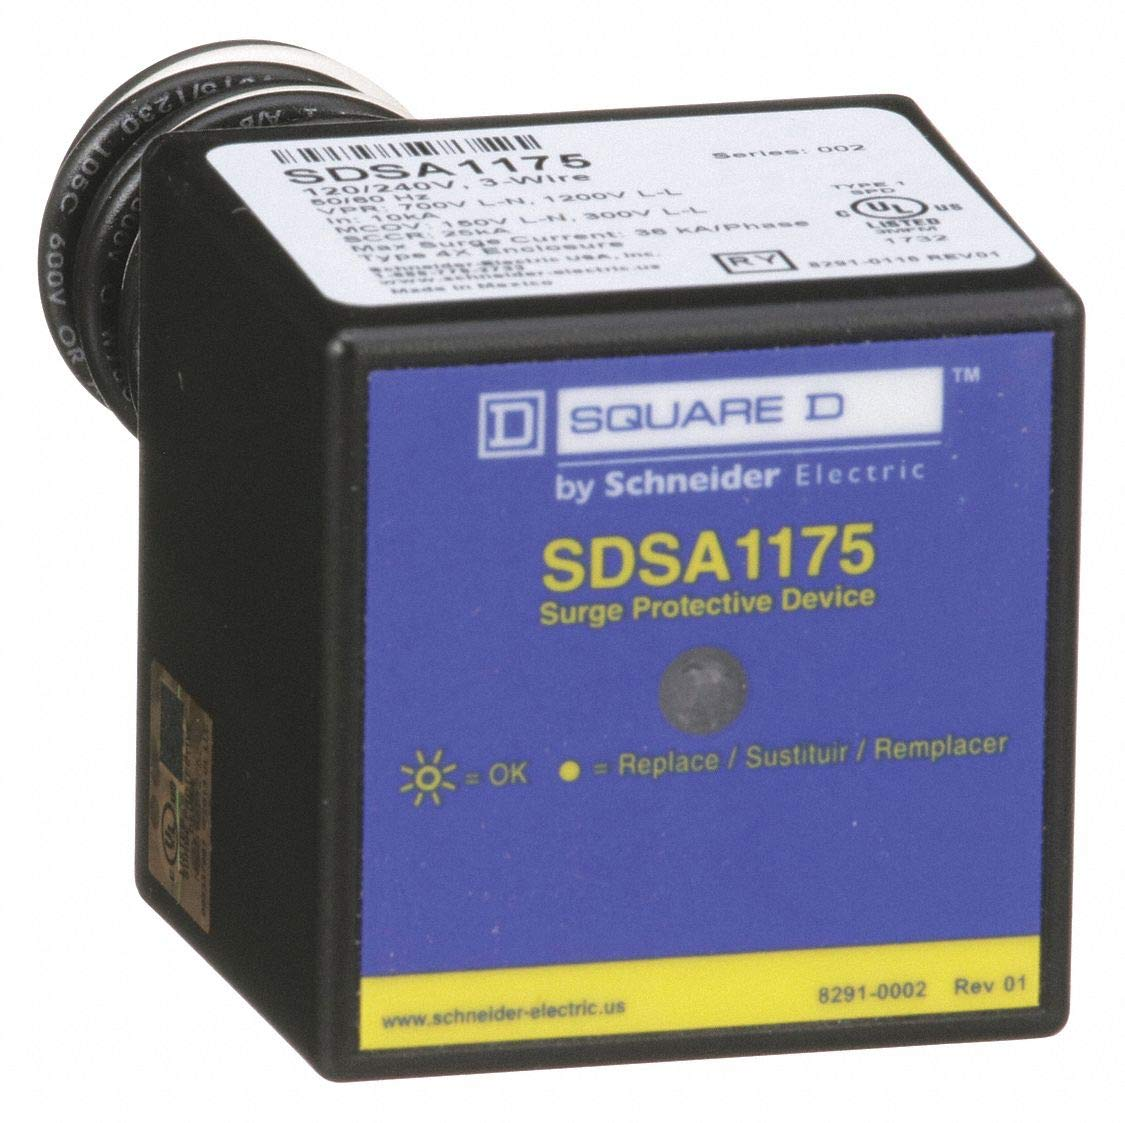 Square D 1 Phase Surge Protection Device, 120/240VAC